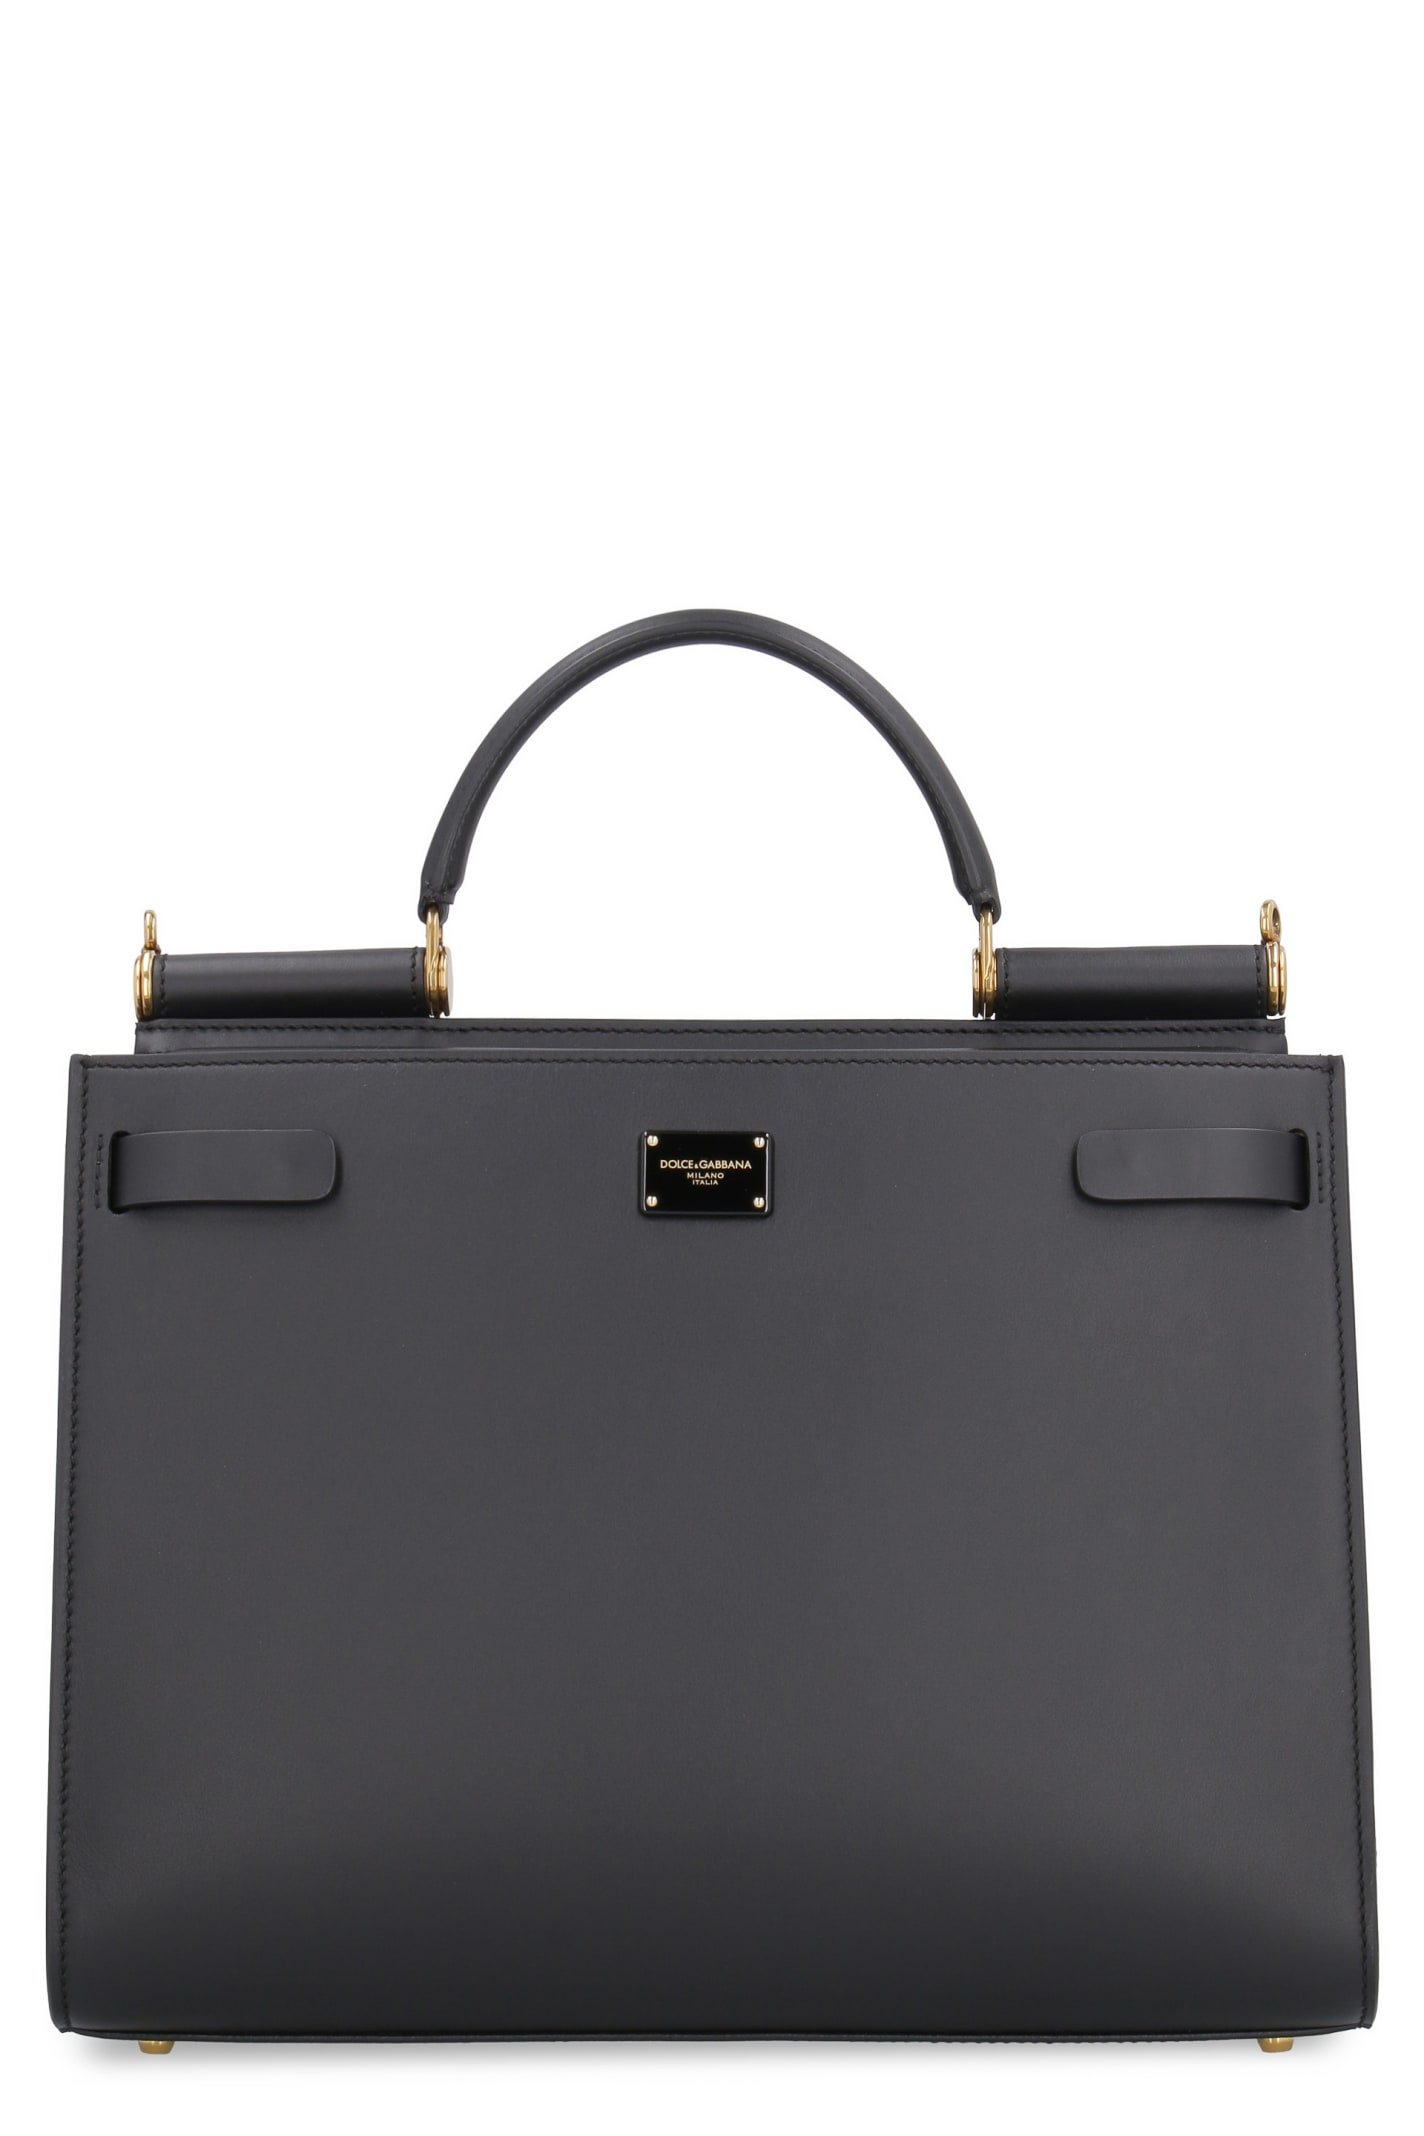 Dolce & Gabbana Sicily 62 Leather Tote